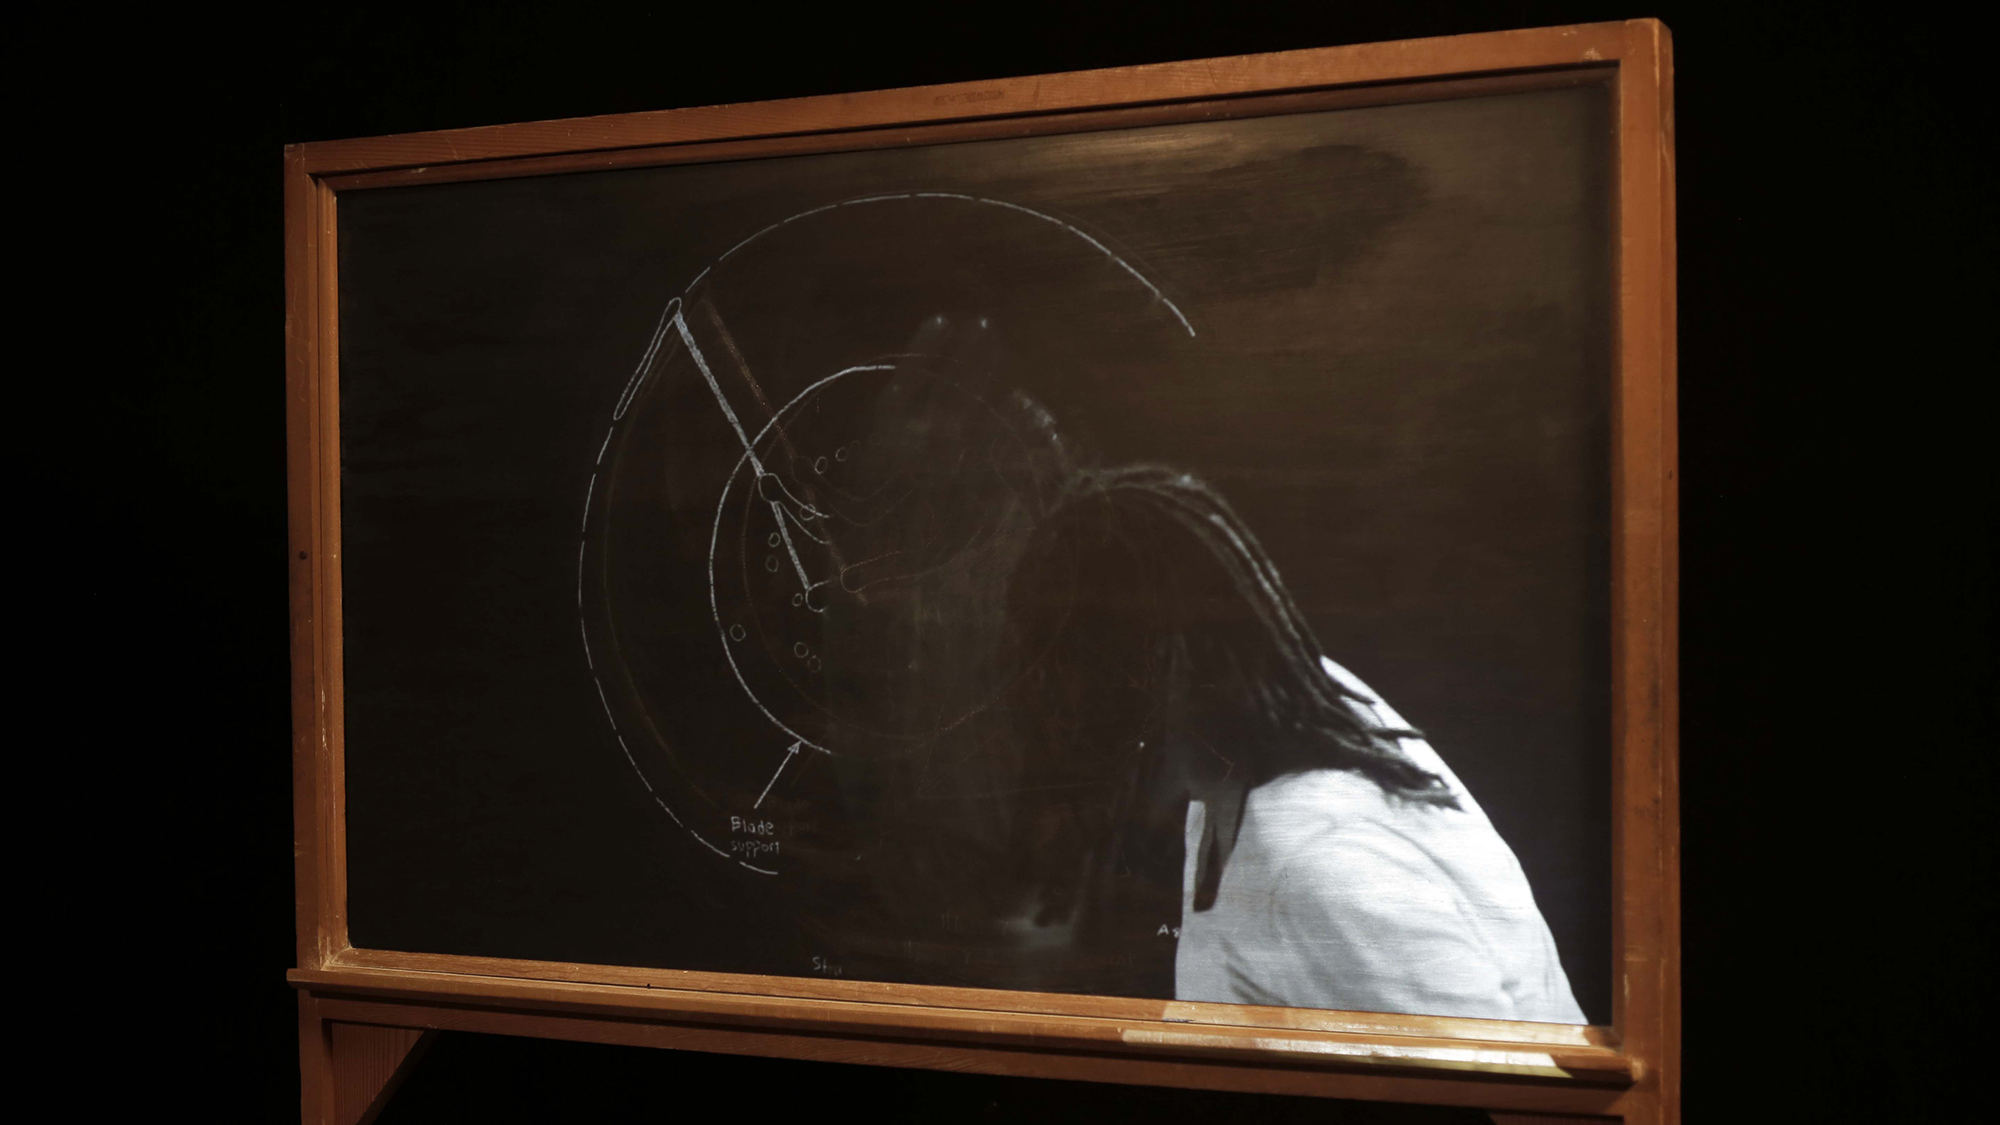 Ariel Jackson  Ghost Image: (Re)Creation and (Re)Understanding  2017  Two-sided chalkboard, chalk, projection, video, image sourced from Judith Carney's  Black Rice: The African Origins of Rice Civilization in the Americas , artist's grandfather's 1970s farm machinery handbook 60 x 72 x 2 inches